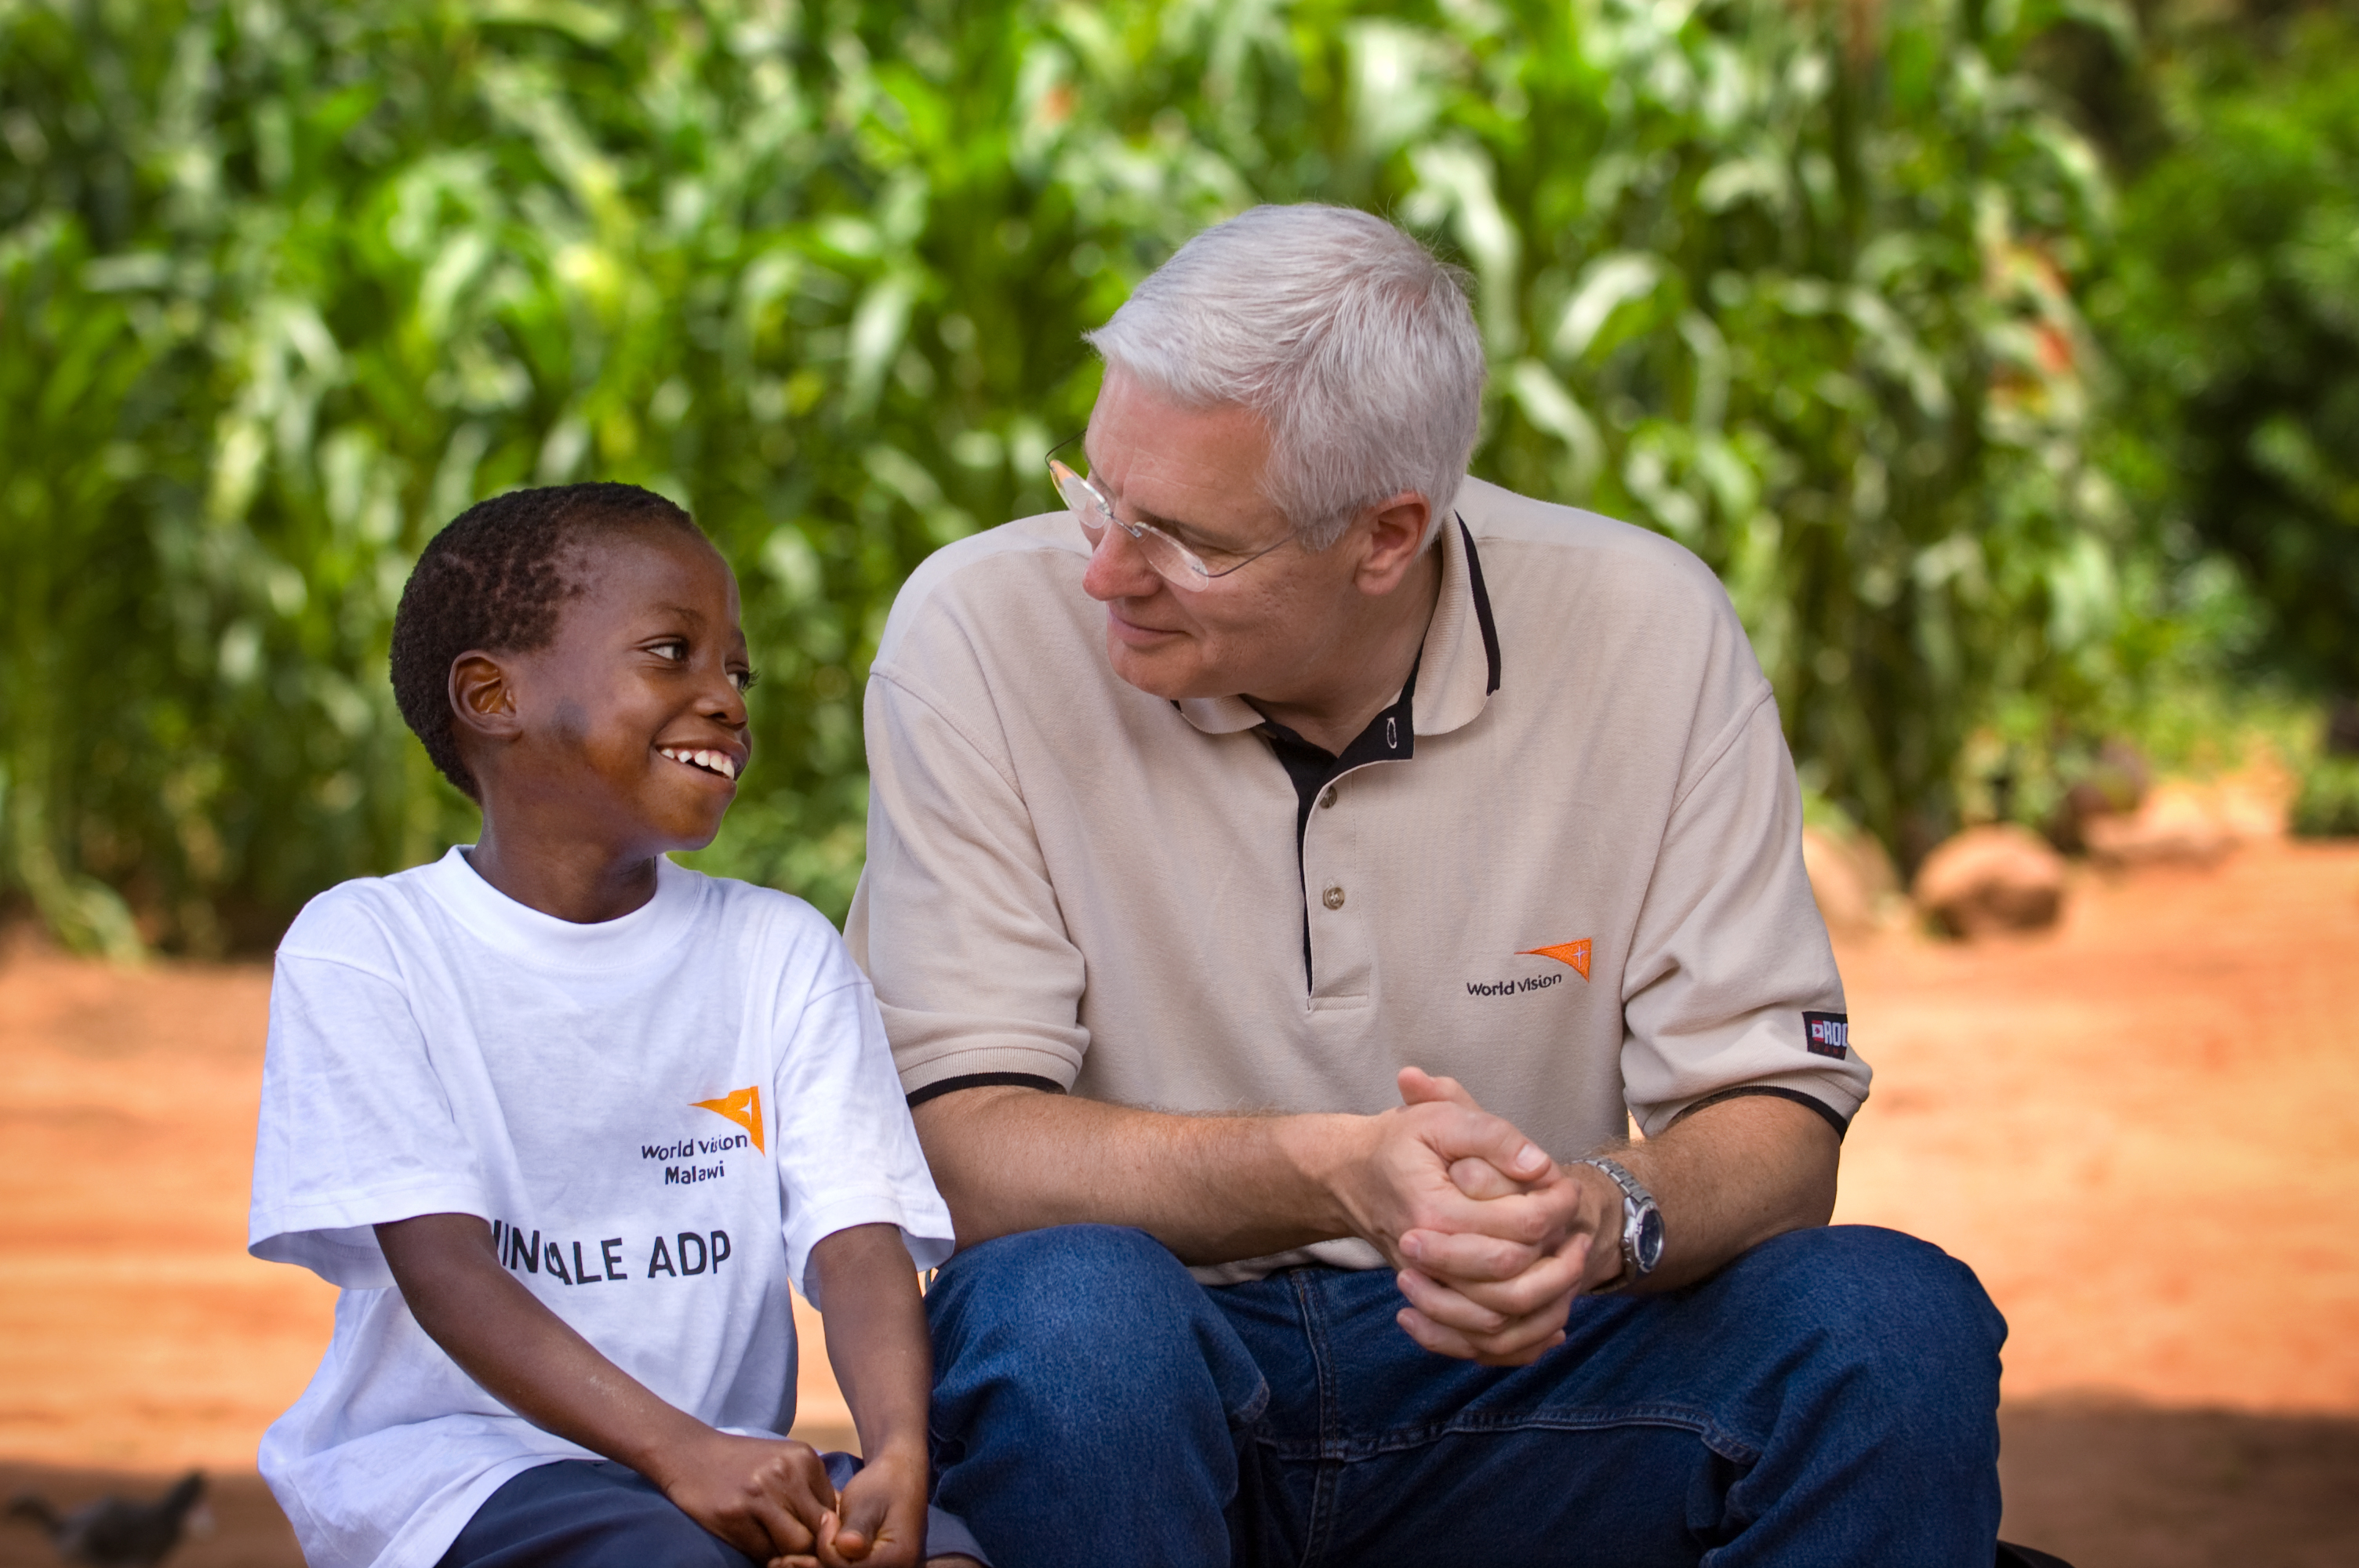 World Vision U.S. President Rich Stearns: 'Why I'm fully persuaded of God's power'